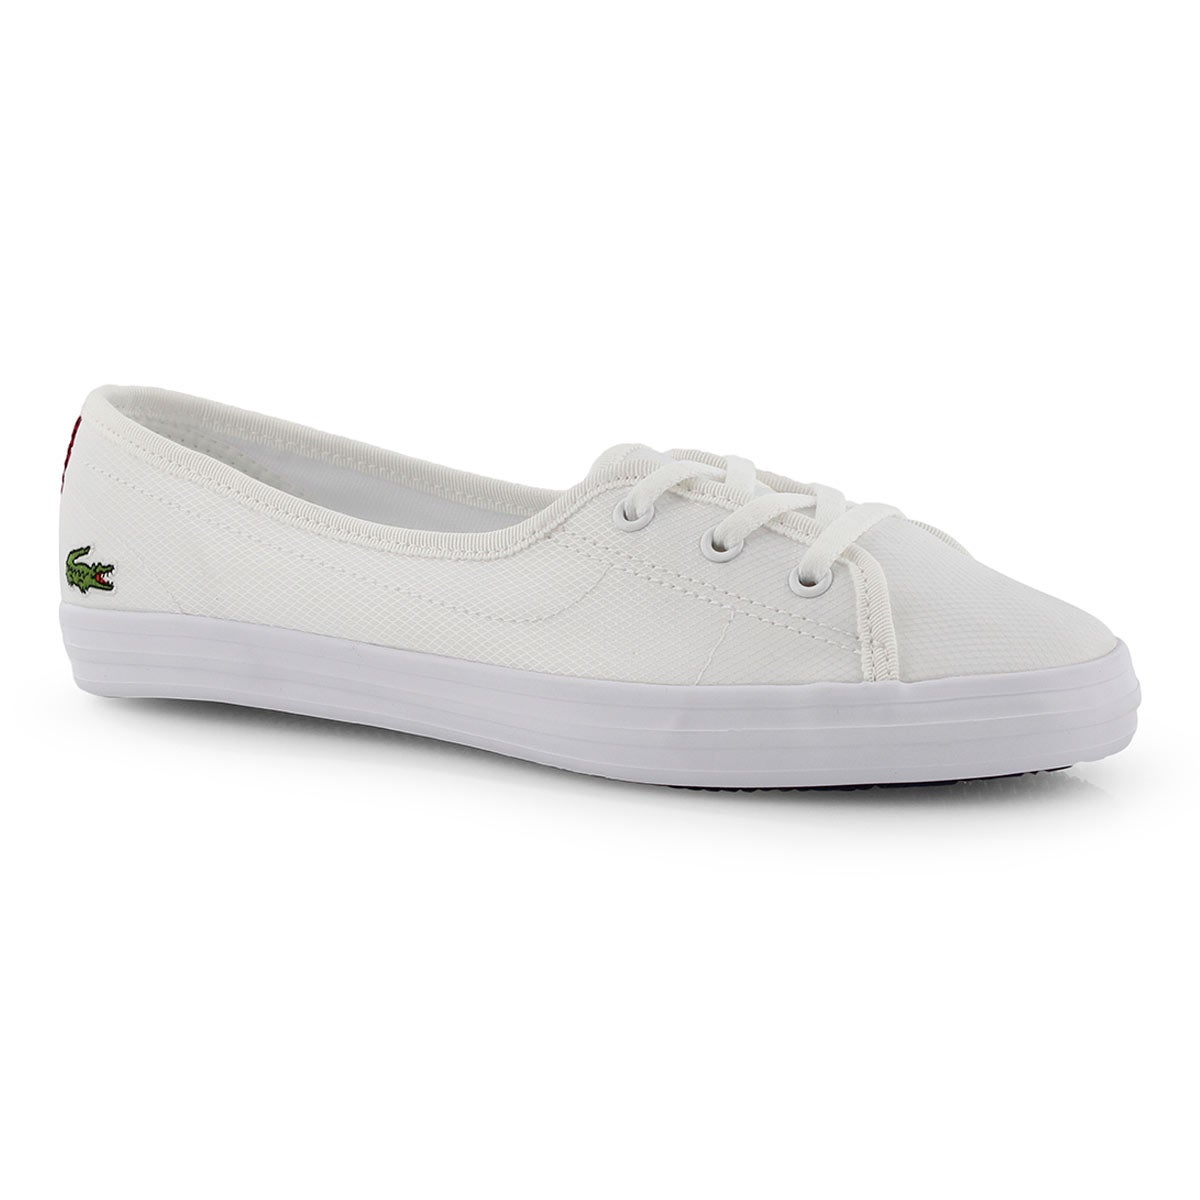 photos officielles 7425c 19f70 Women's ZIANE CHUNKY 119 2 white slip ons